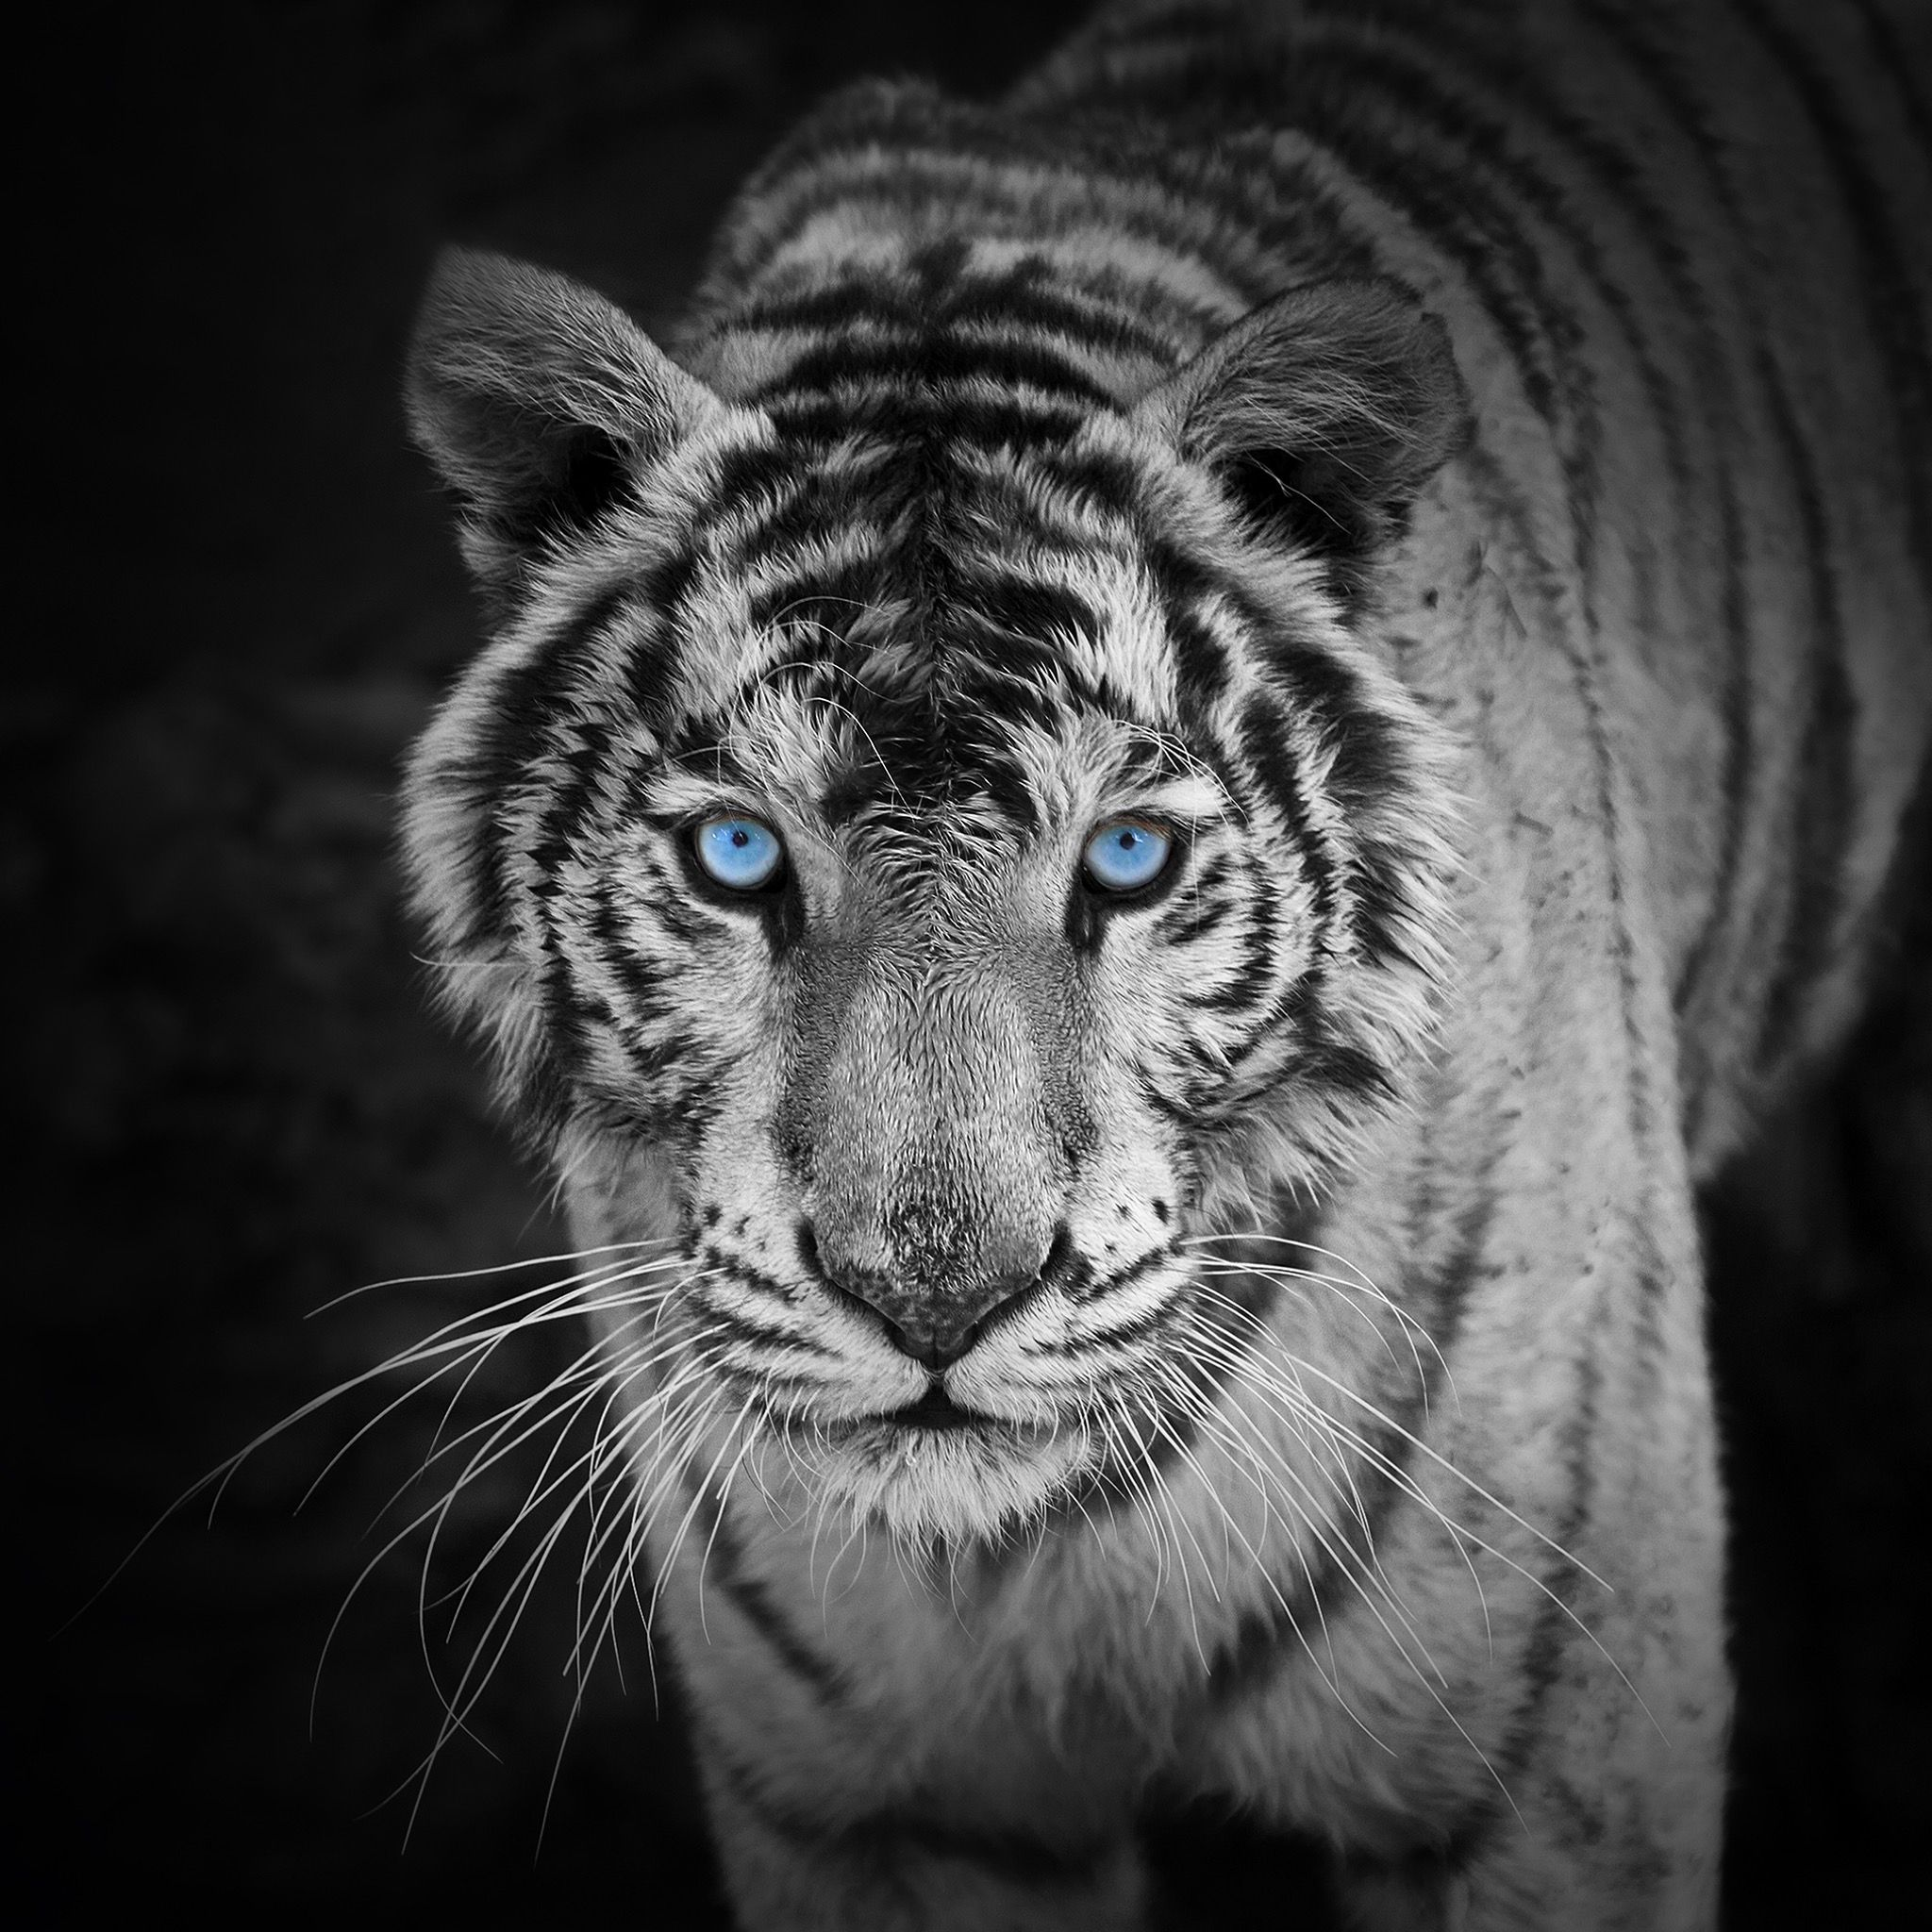 White Tiger With Images Pet Tiger Tiger Wallpaper Tiger Photography